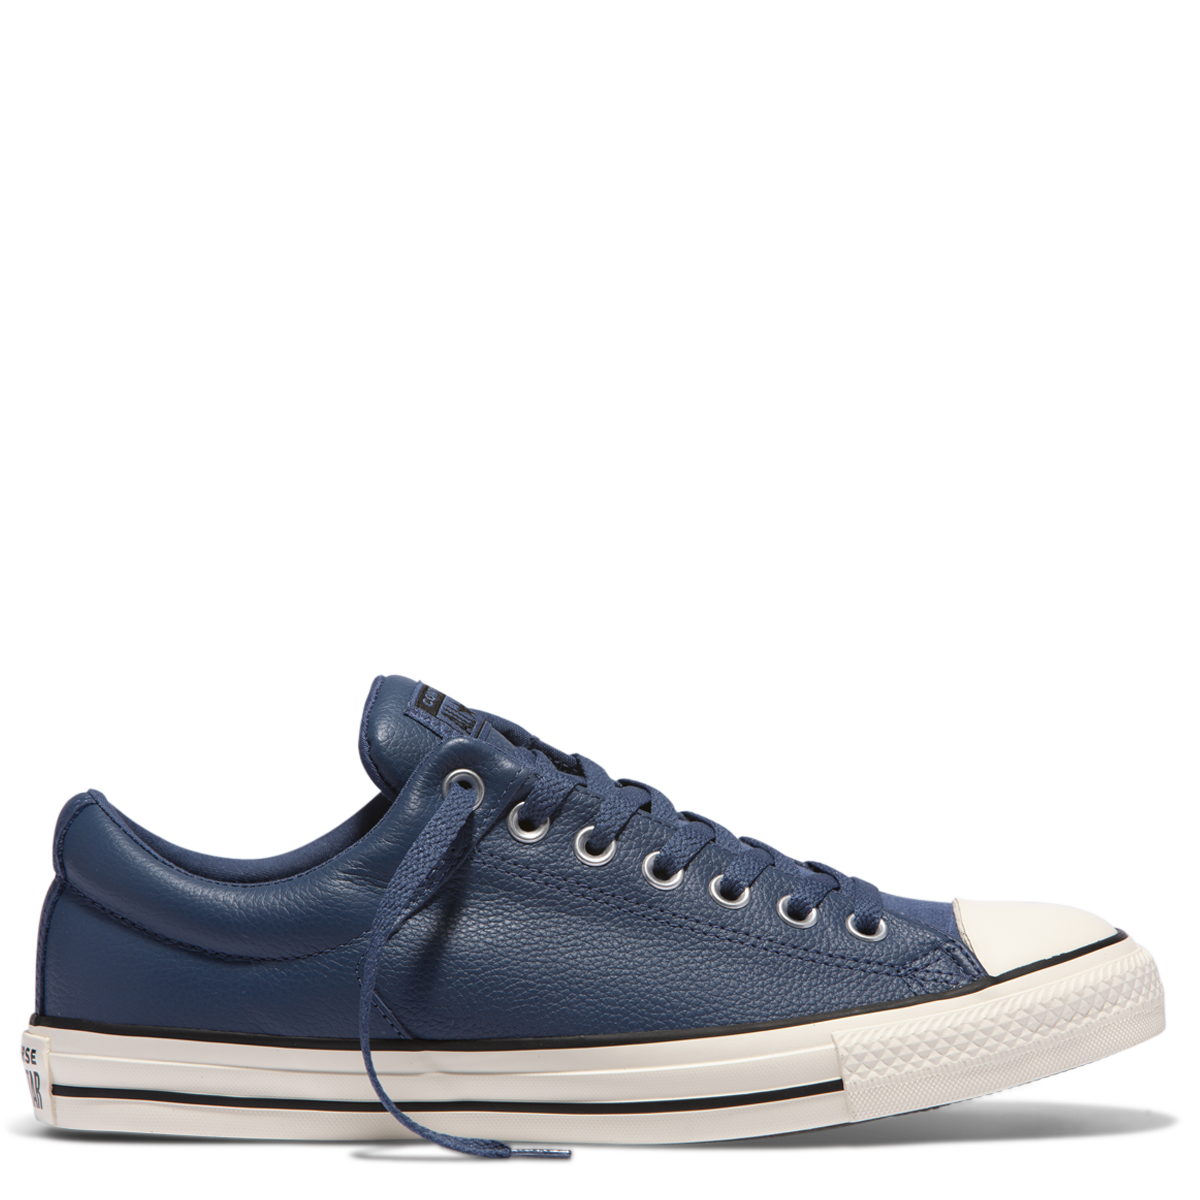 Chuck Taylor All Star High Street Post Game Low Top Mason online at Converse.  Free shipping on orders over  75. 1327e1986